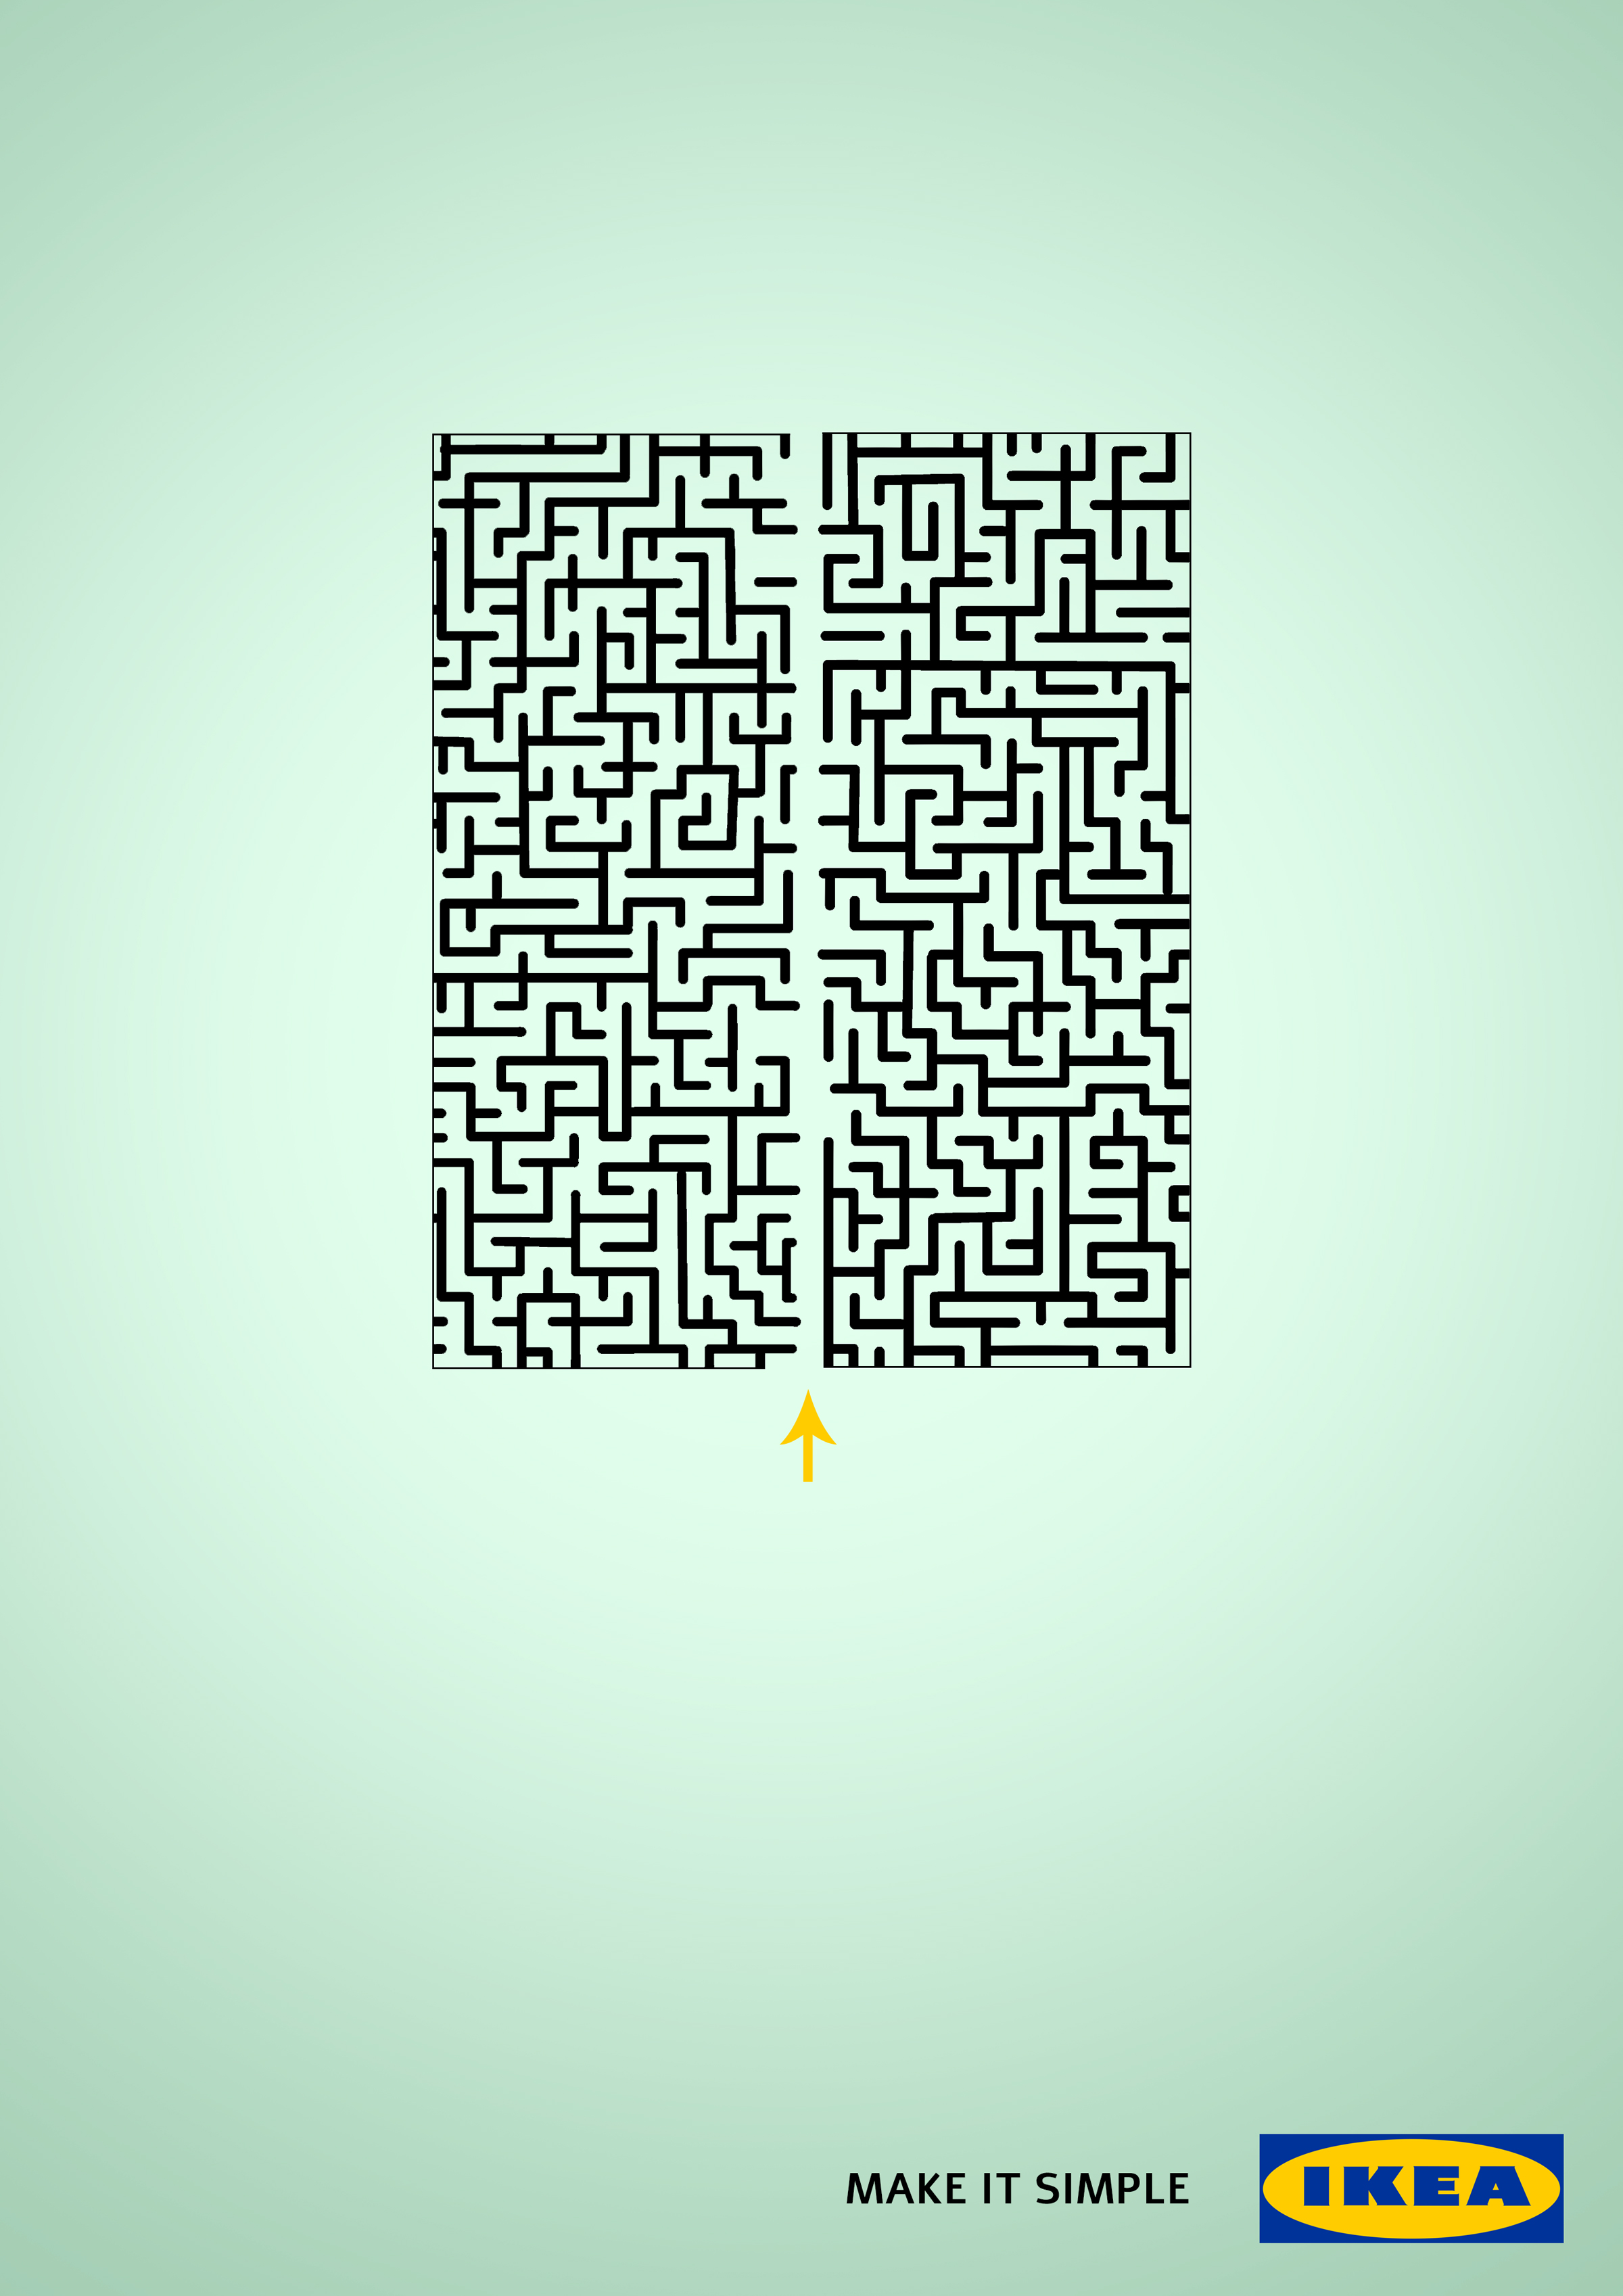 IKEA Print Advert By ACC Grannot: Maze | Ads of the World™